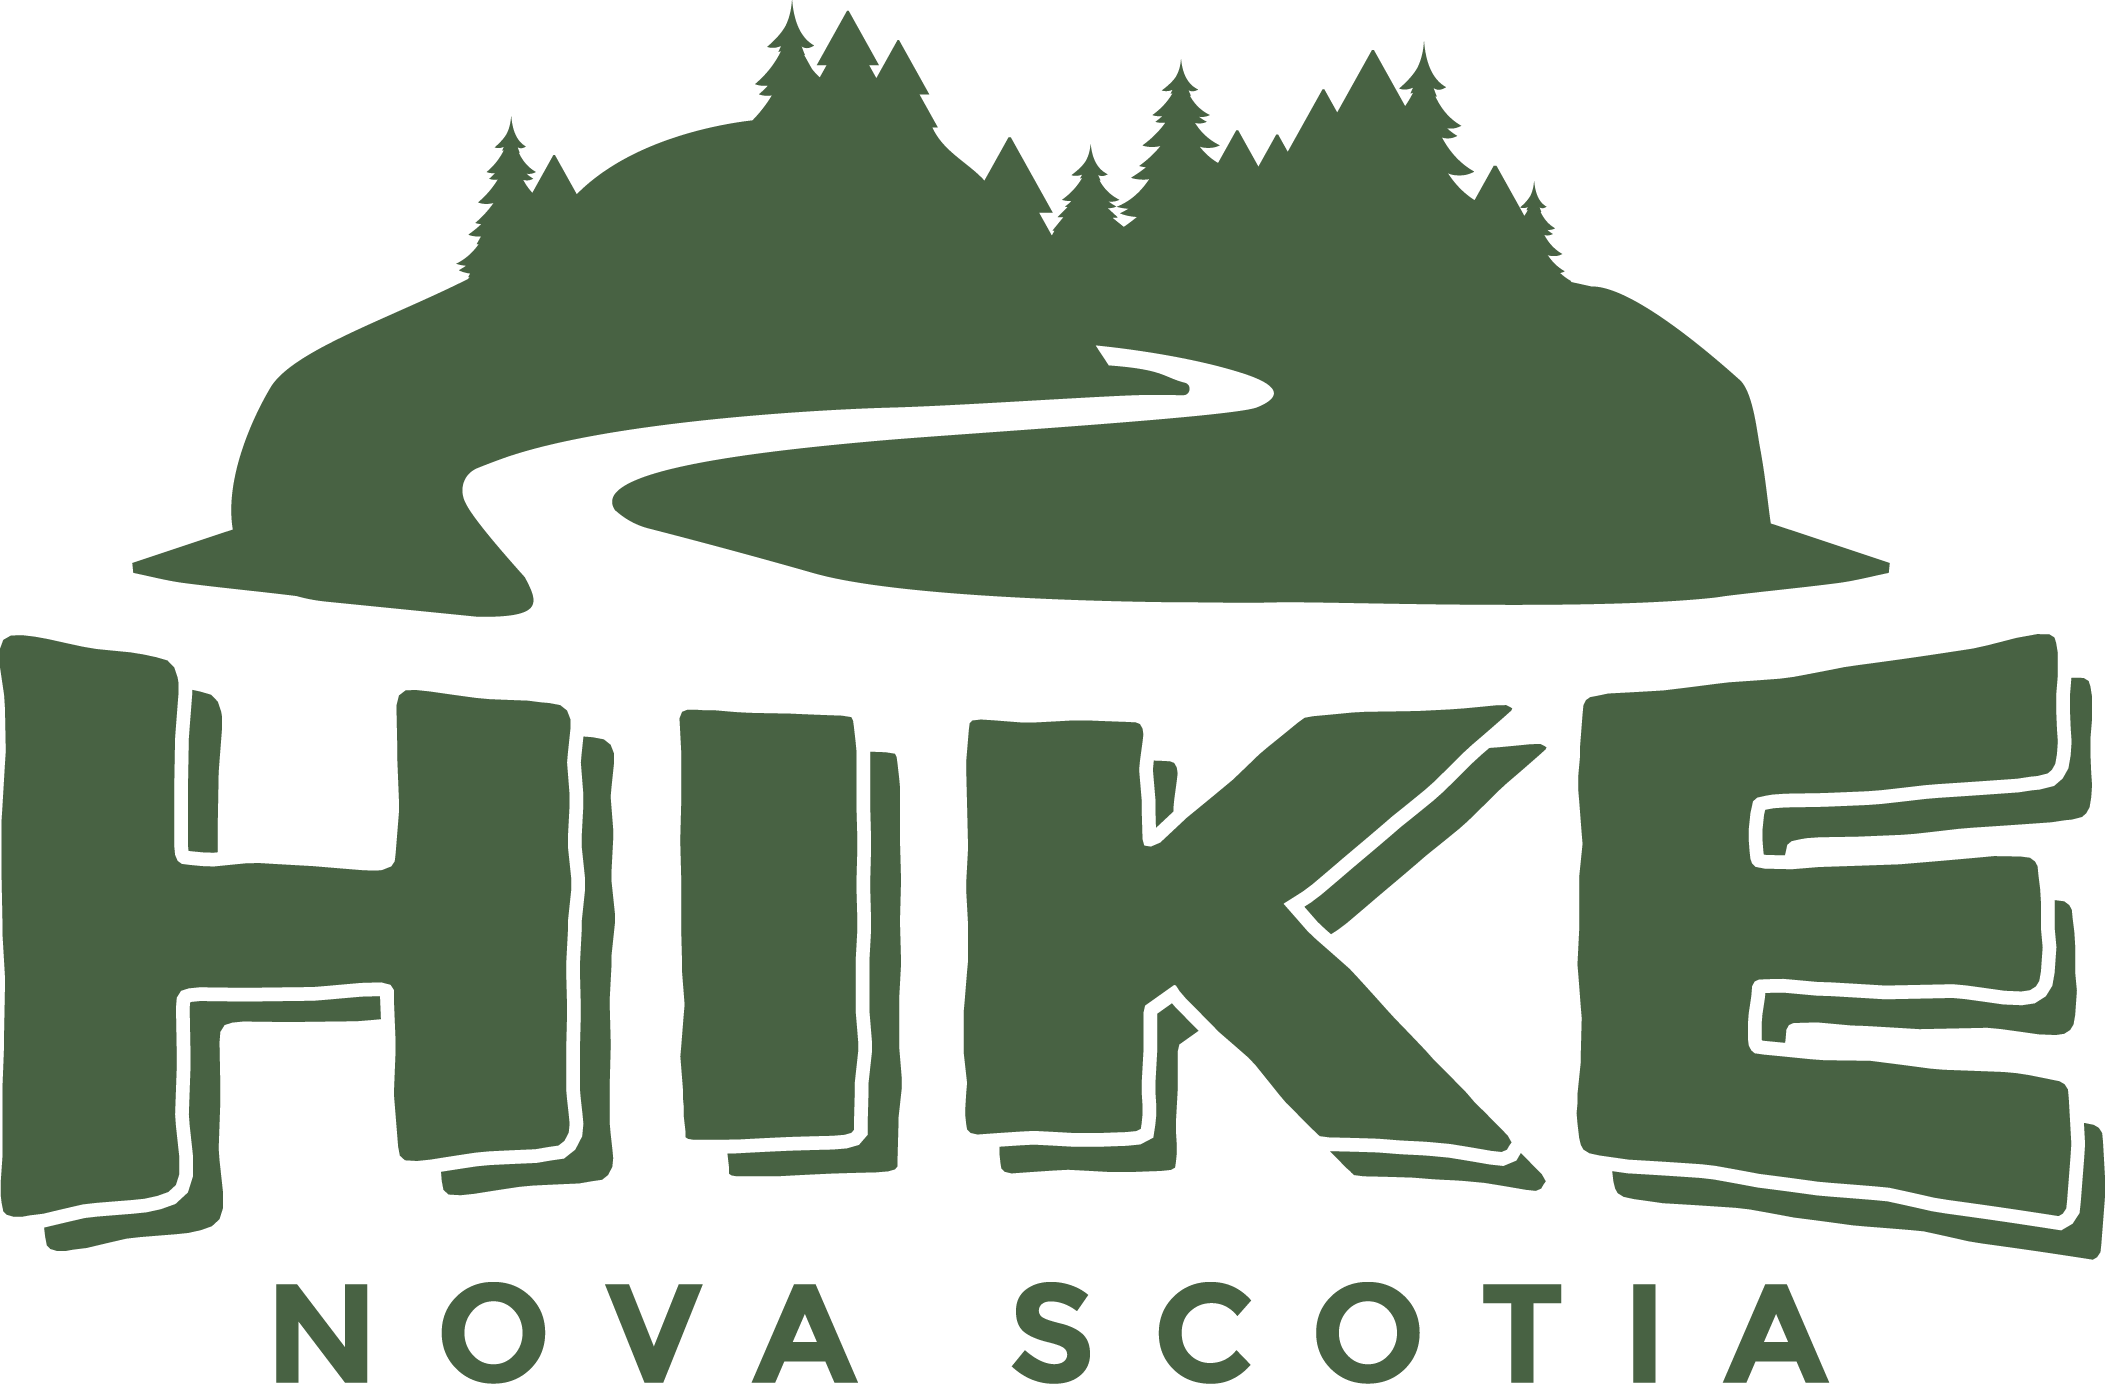 Hike Nova Scotia